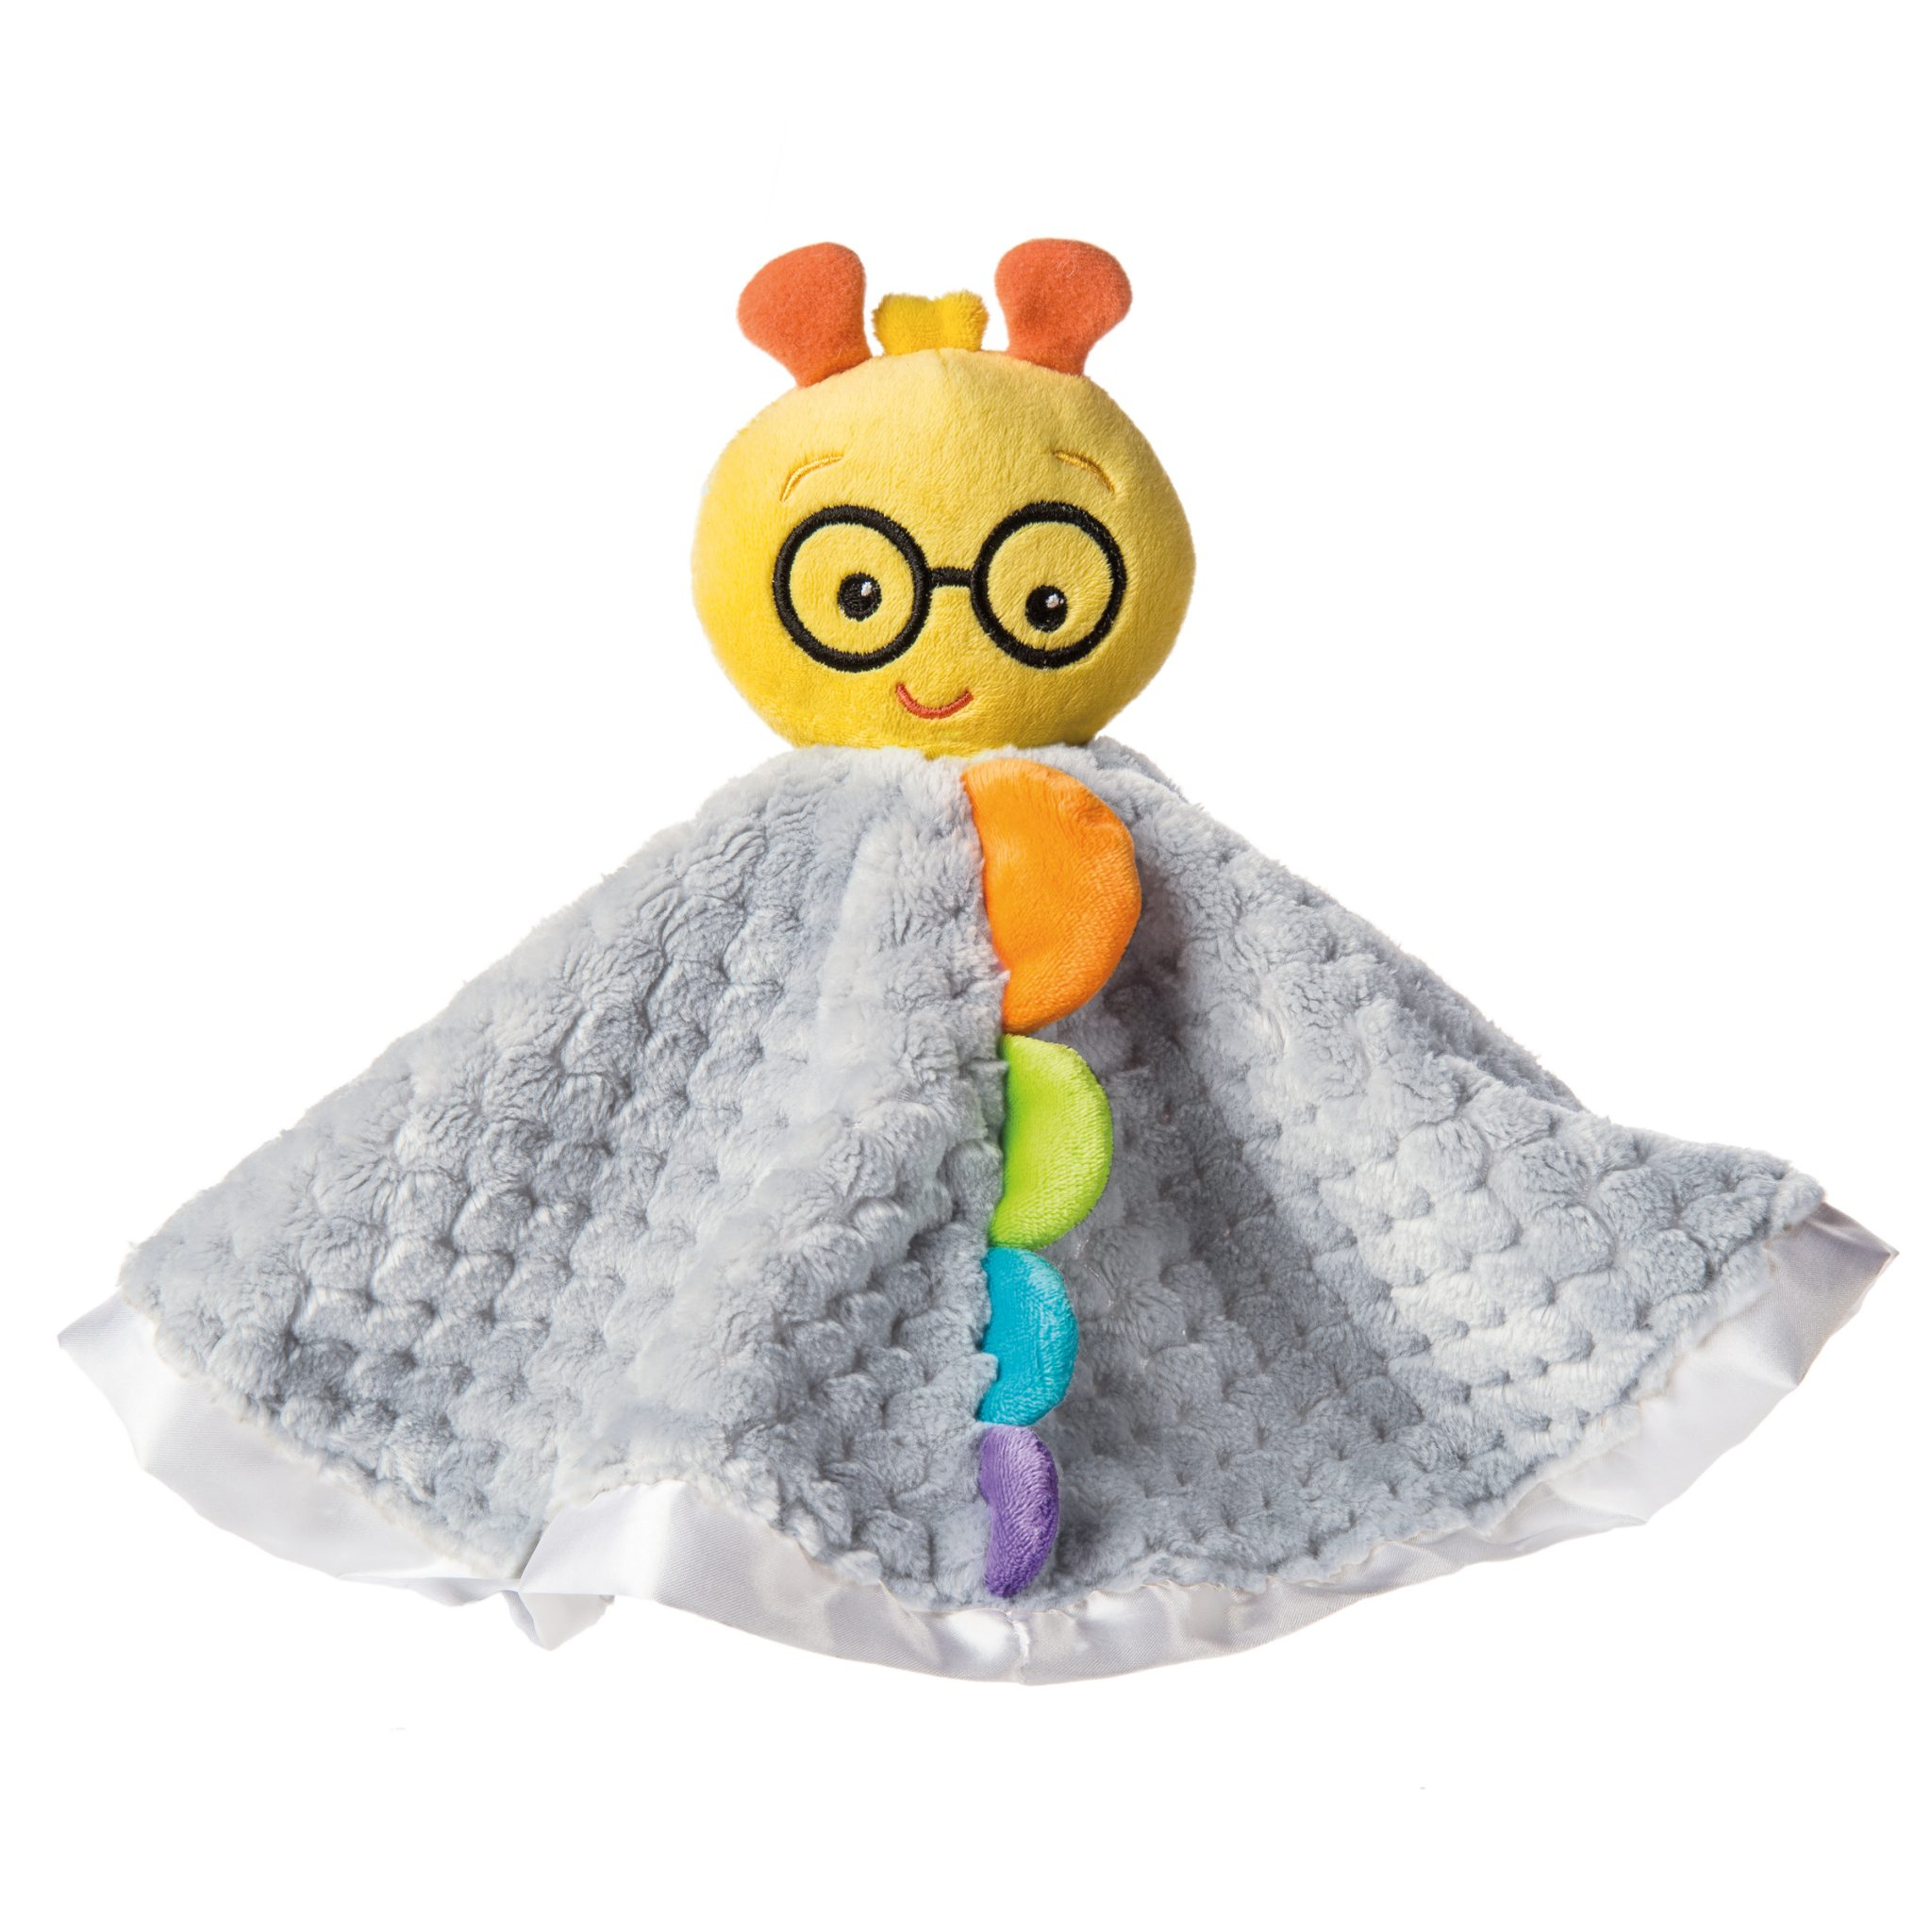 Baby Epstein Cal Peekaboo Blanket - Click Image to Close